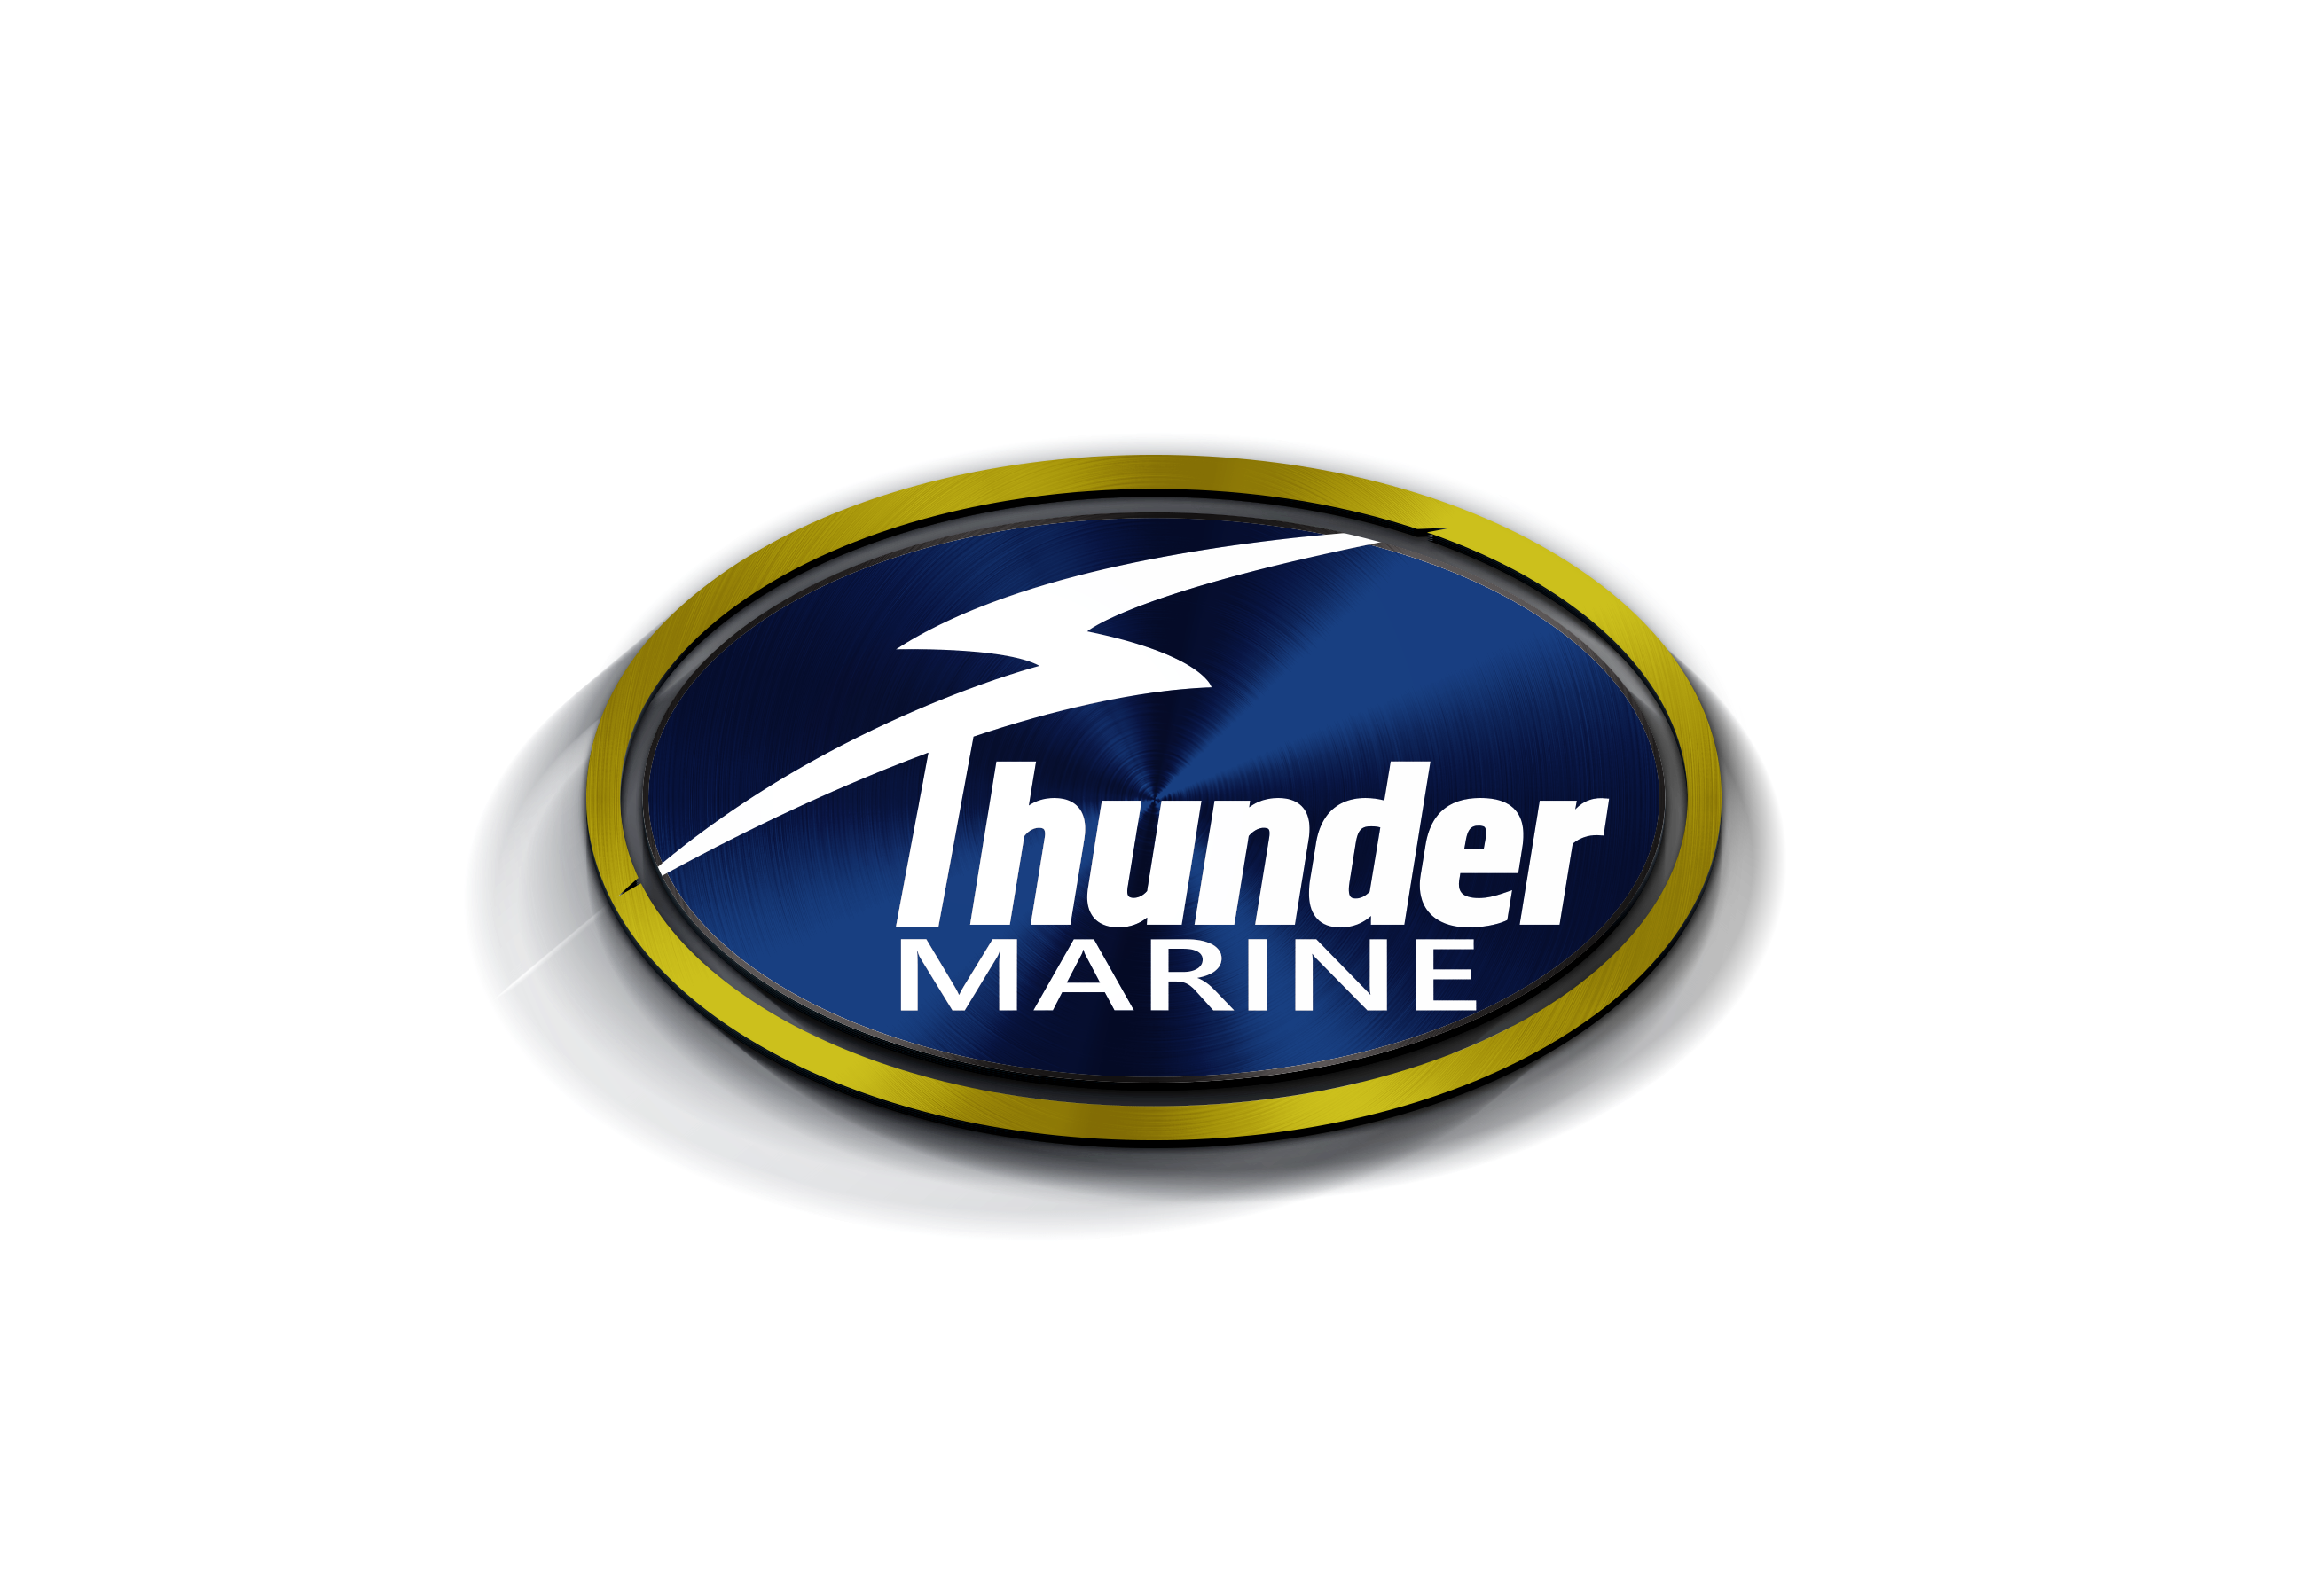 Thunder Marinelogo